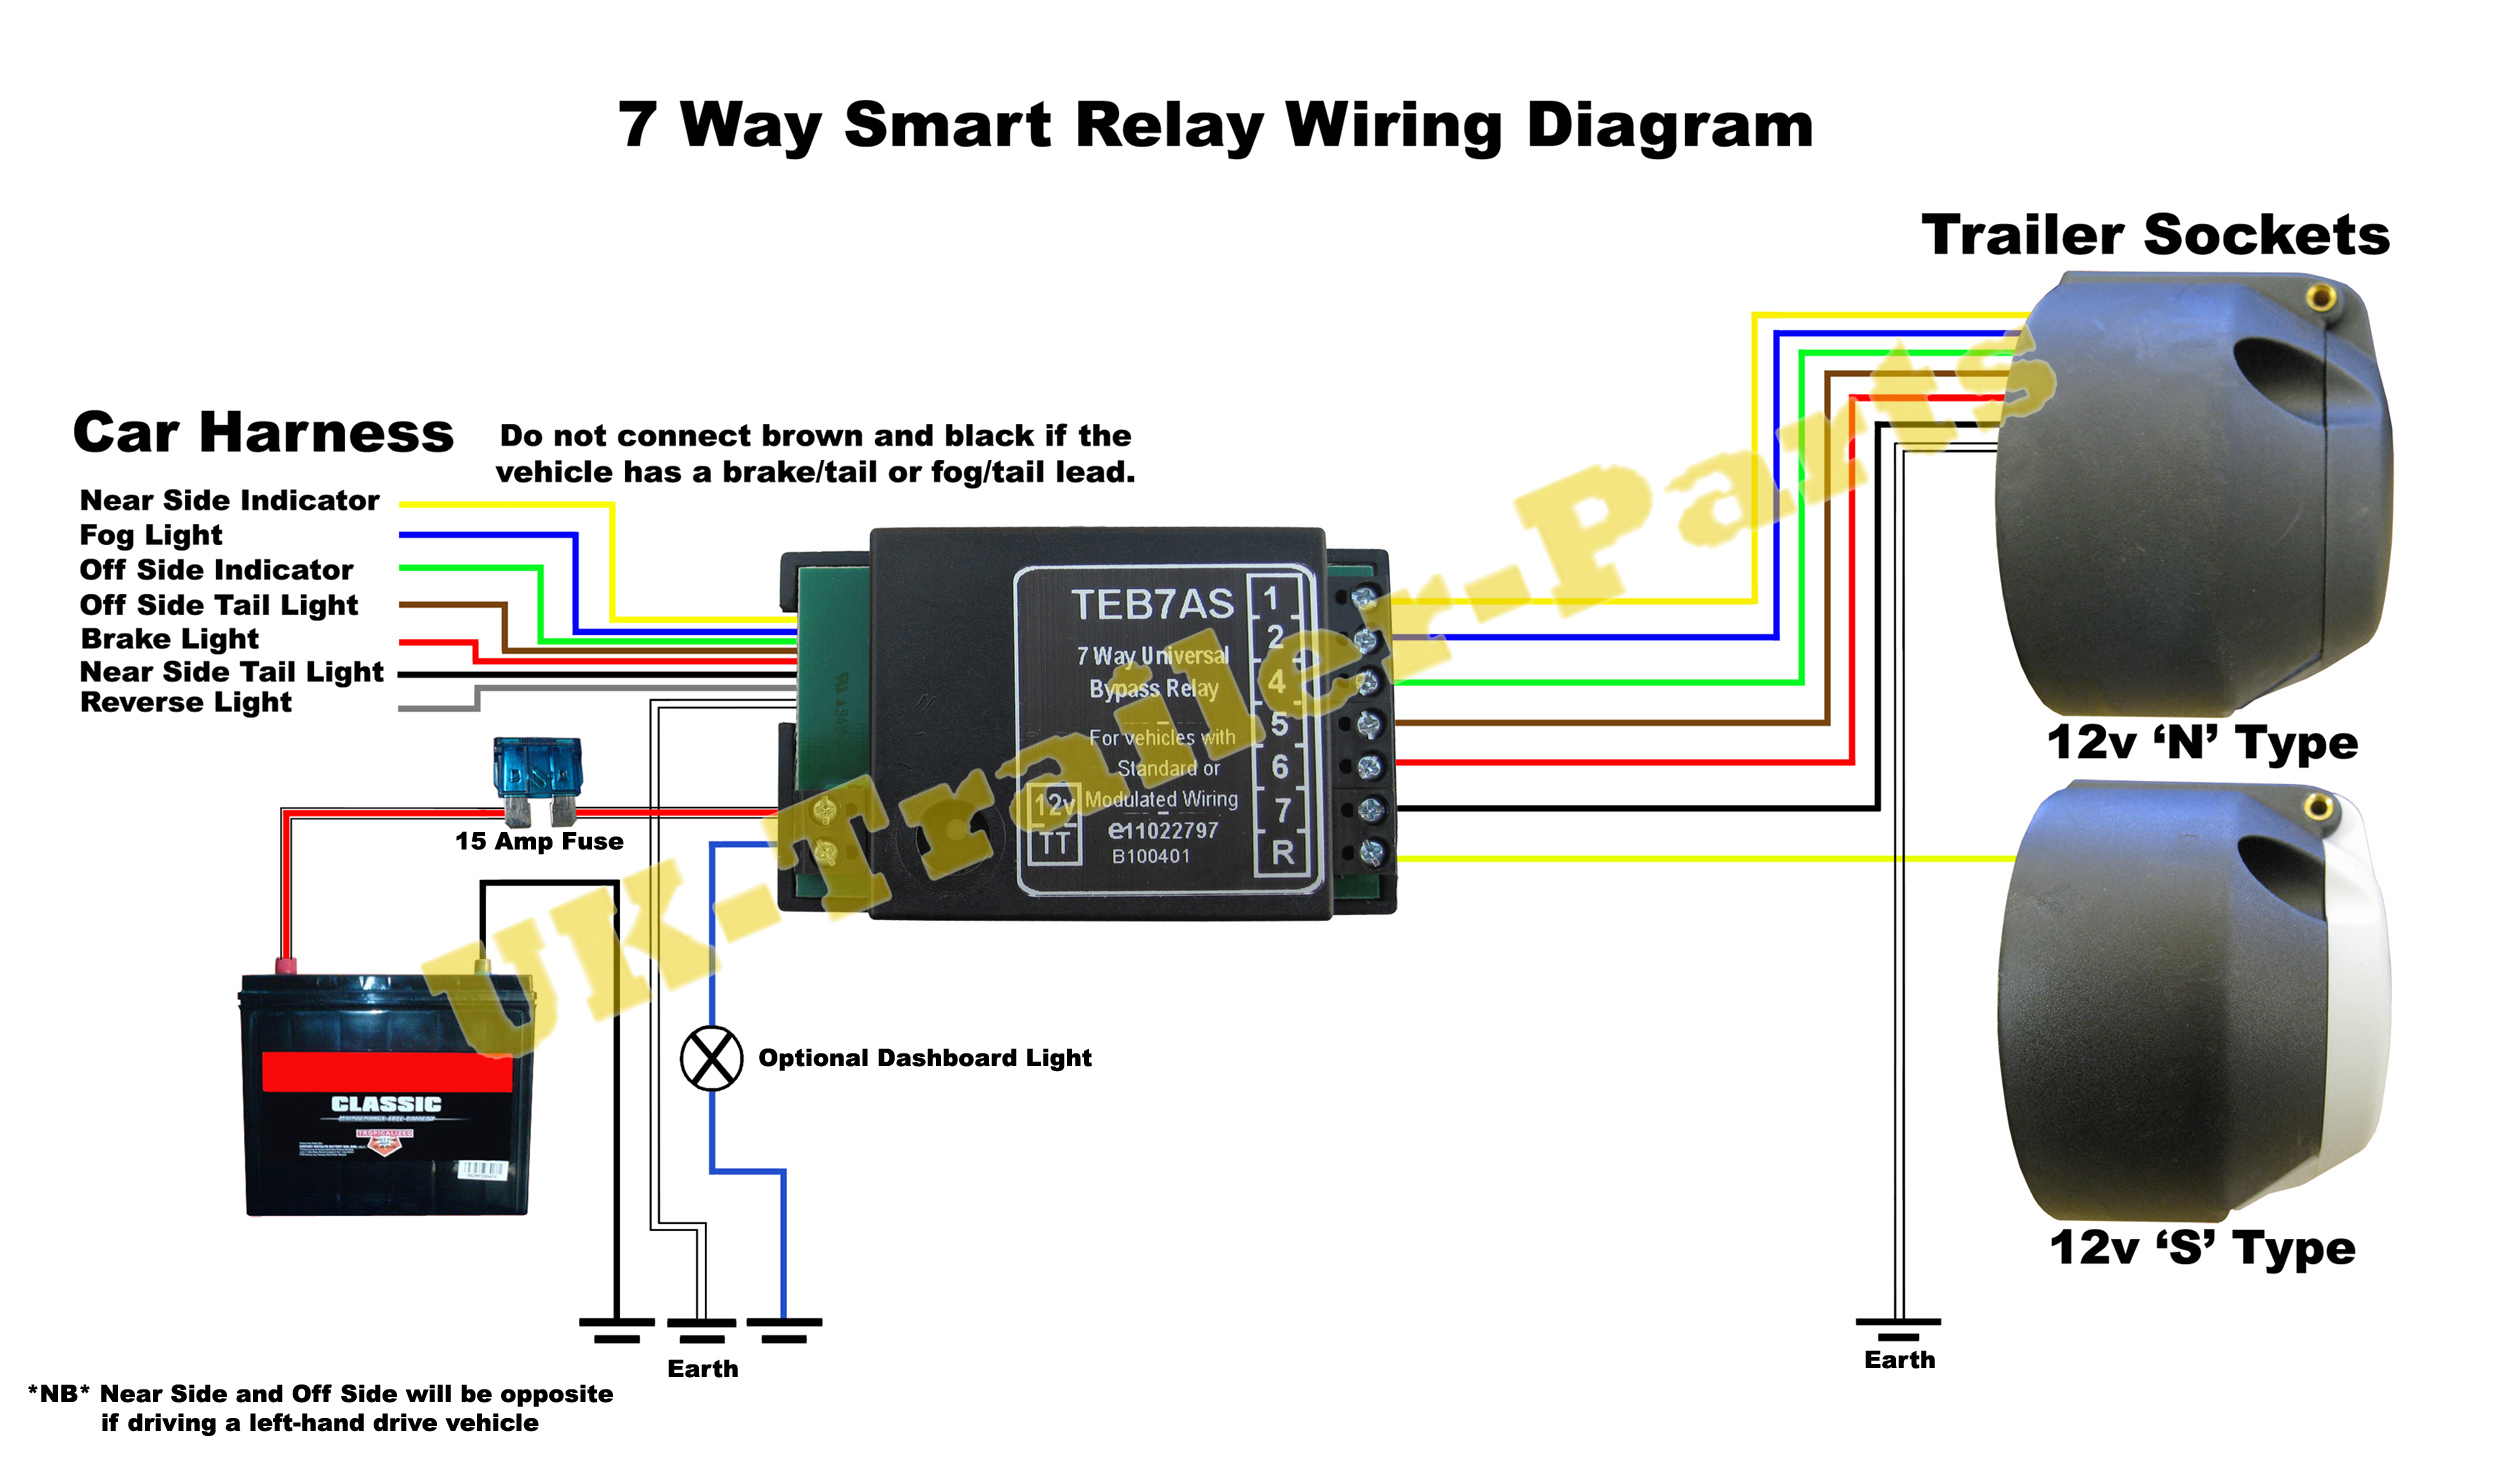 7 Way universal bypass relay wiring diagram | UK-Trailer-Parts